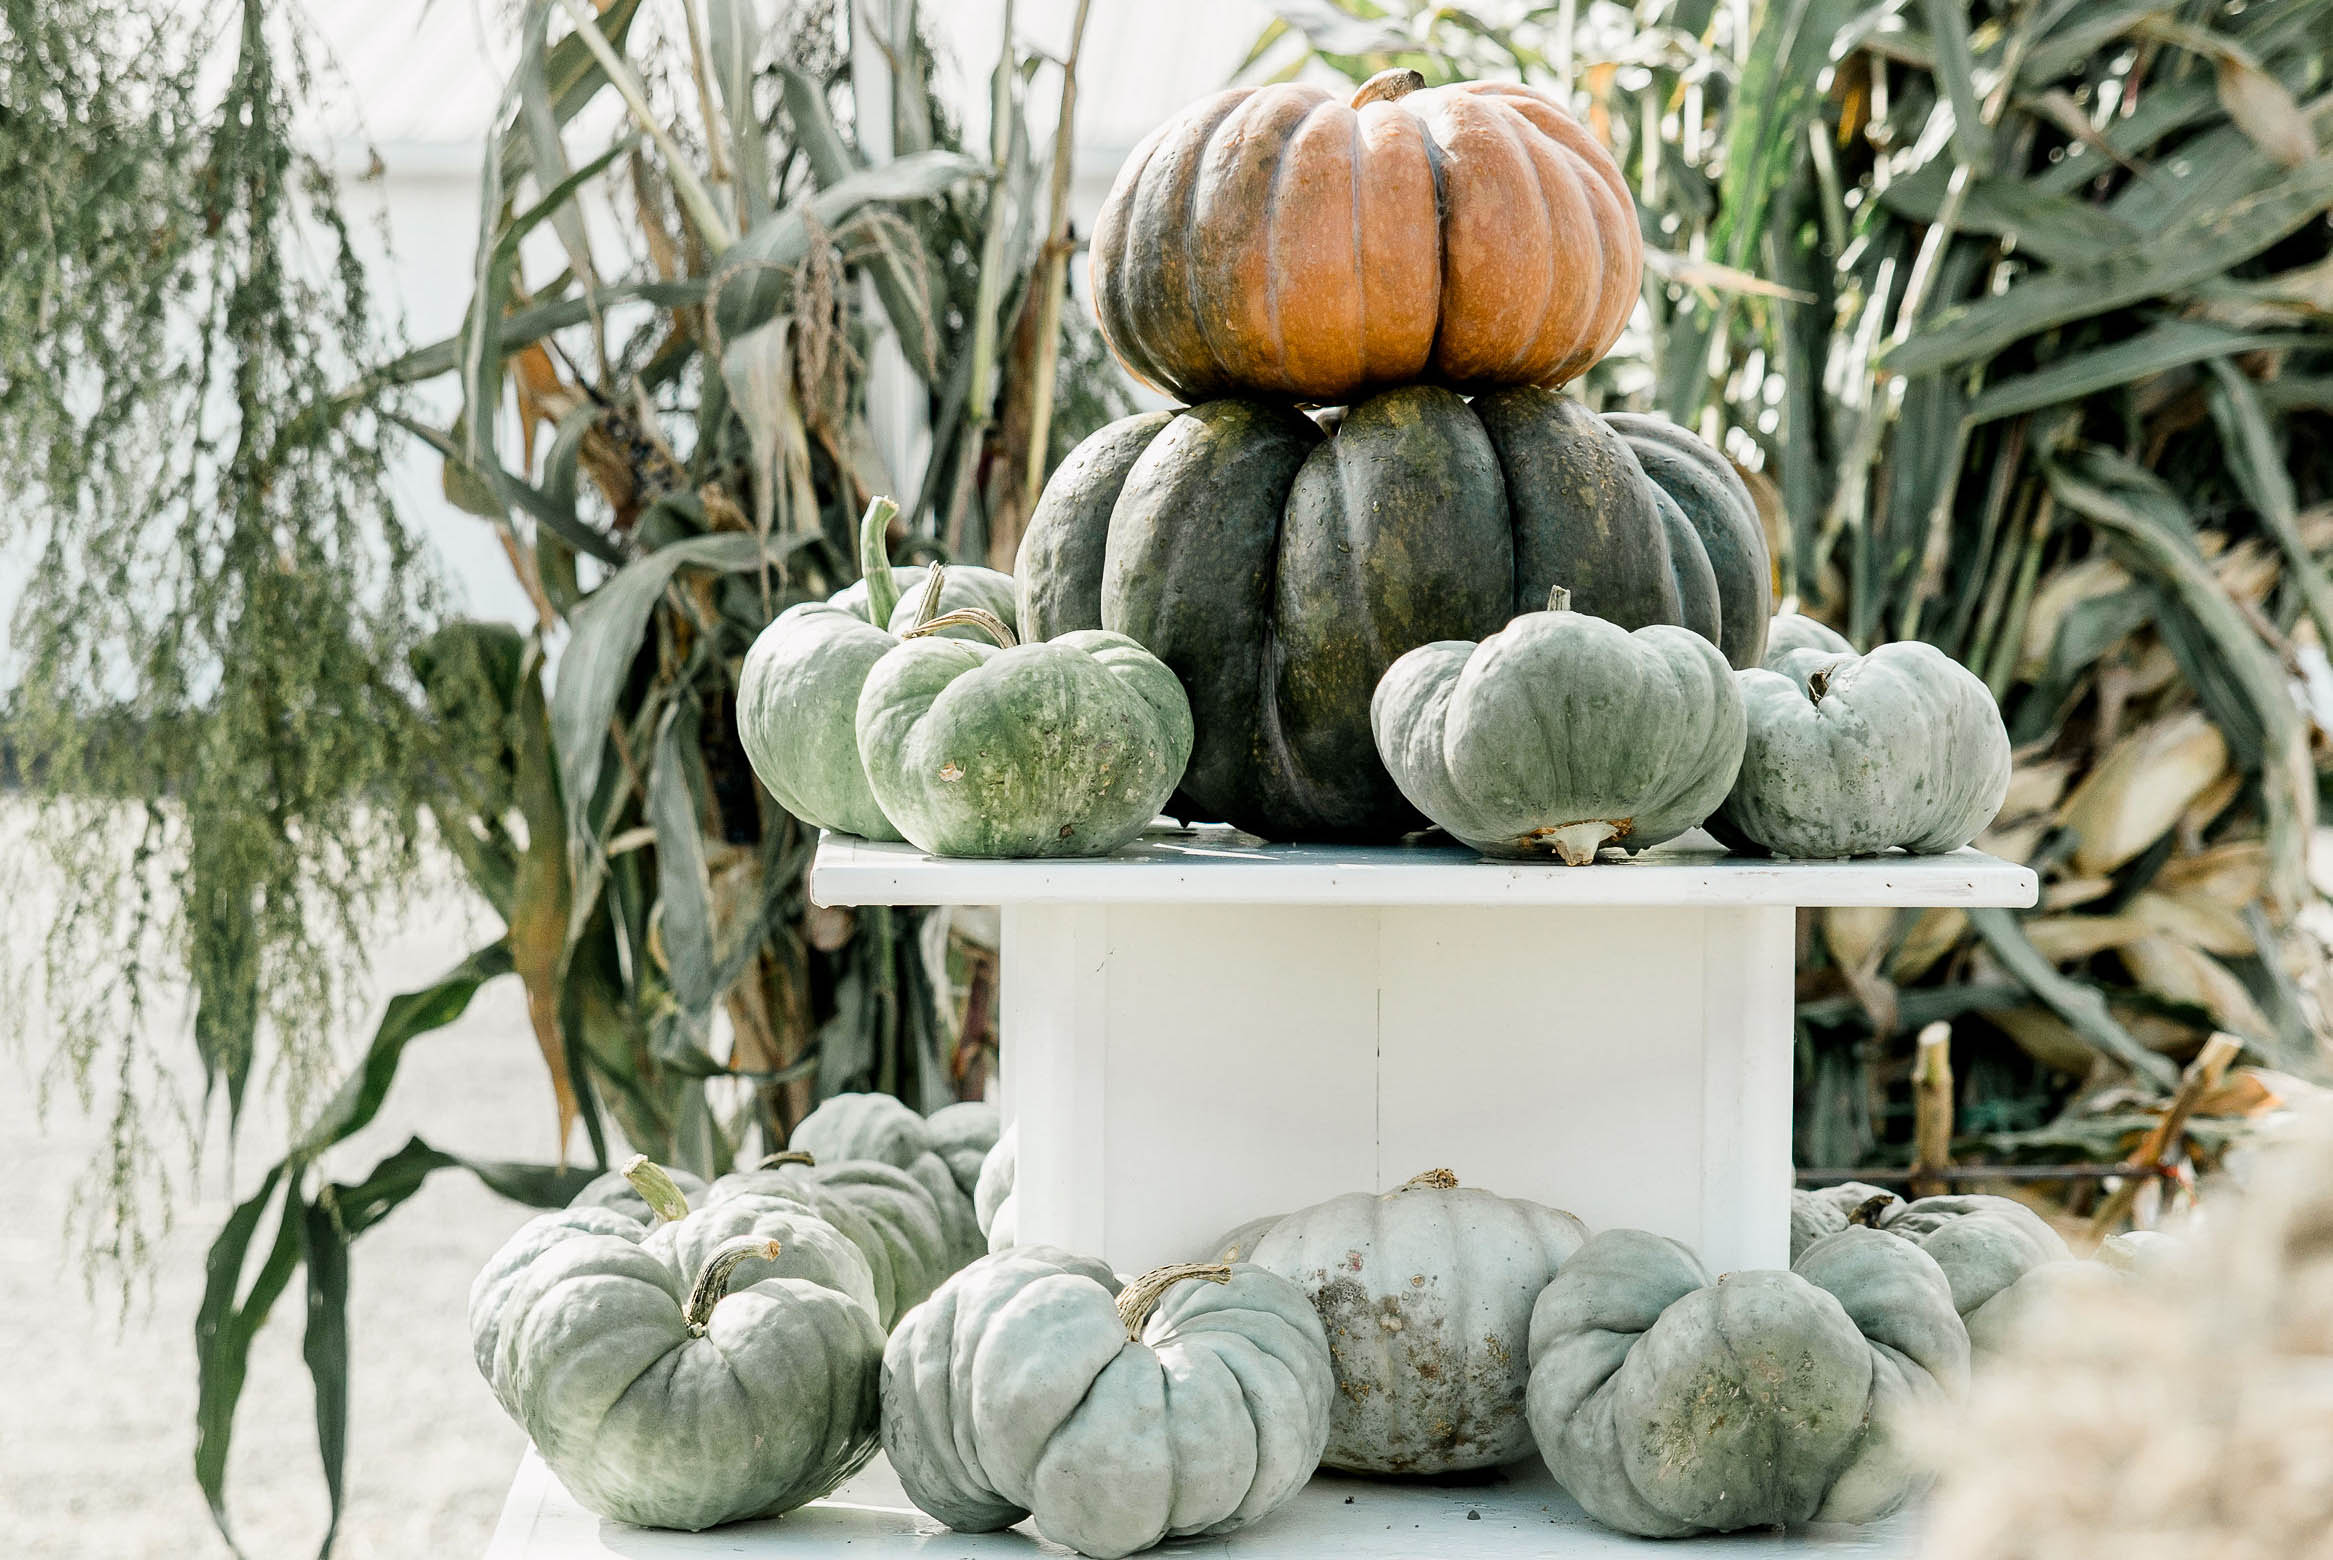 HEIRLOOM PUMPKINS - Our first harvest of Heirloom Pumpkins was a dream come true in 2018. From start to finish, our pumpkins are hand planted, hand picked and raised as naturally as possible.